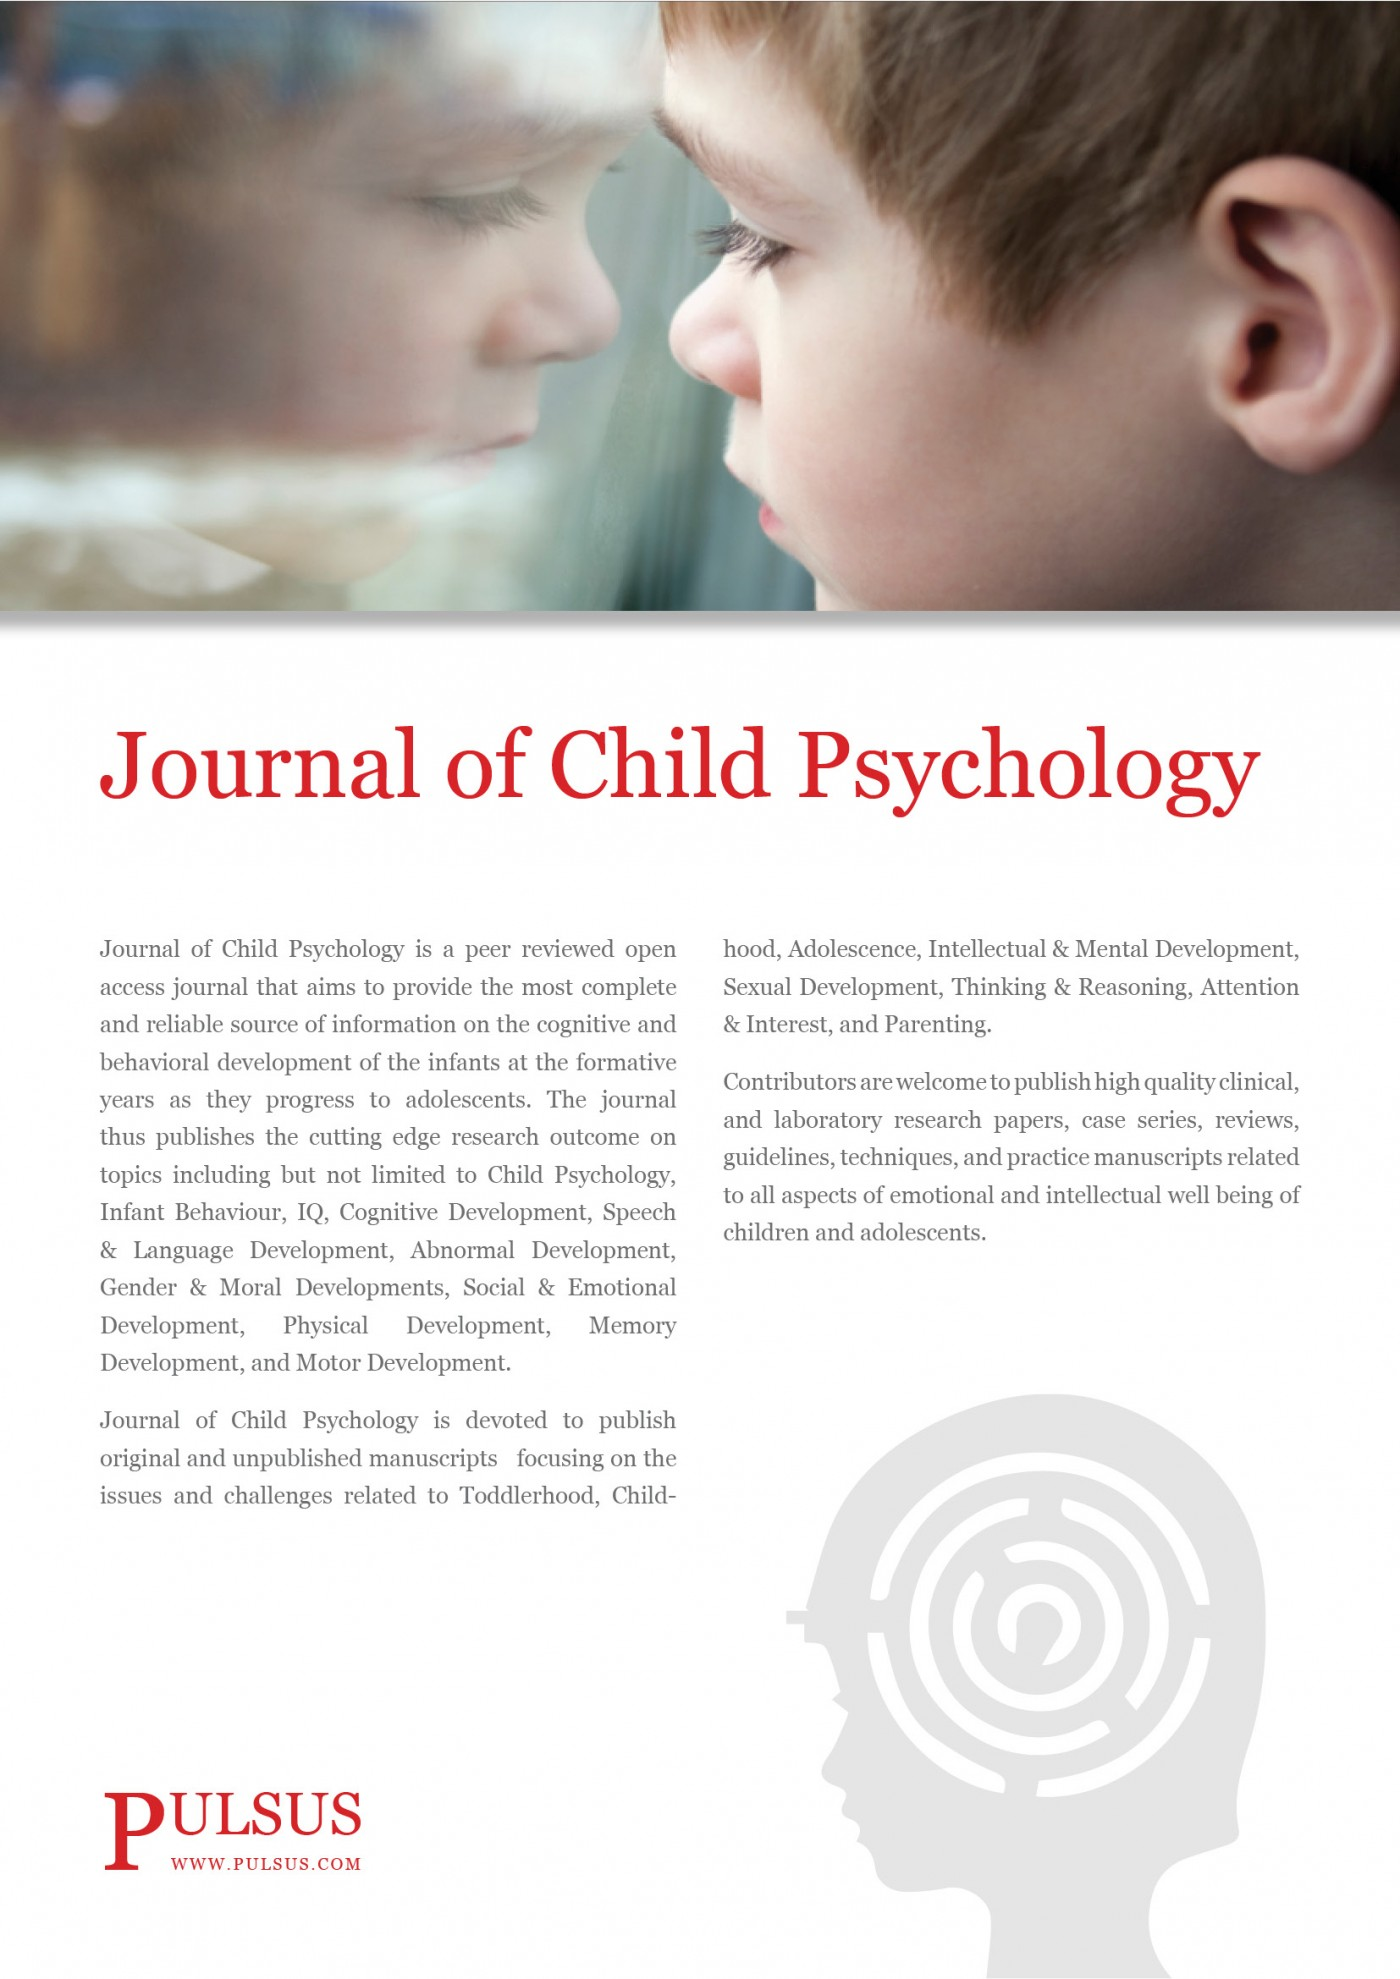 001 Journal Of Child Psychology Flyer Research Paper Articles On Wondrous Development 1400